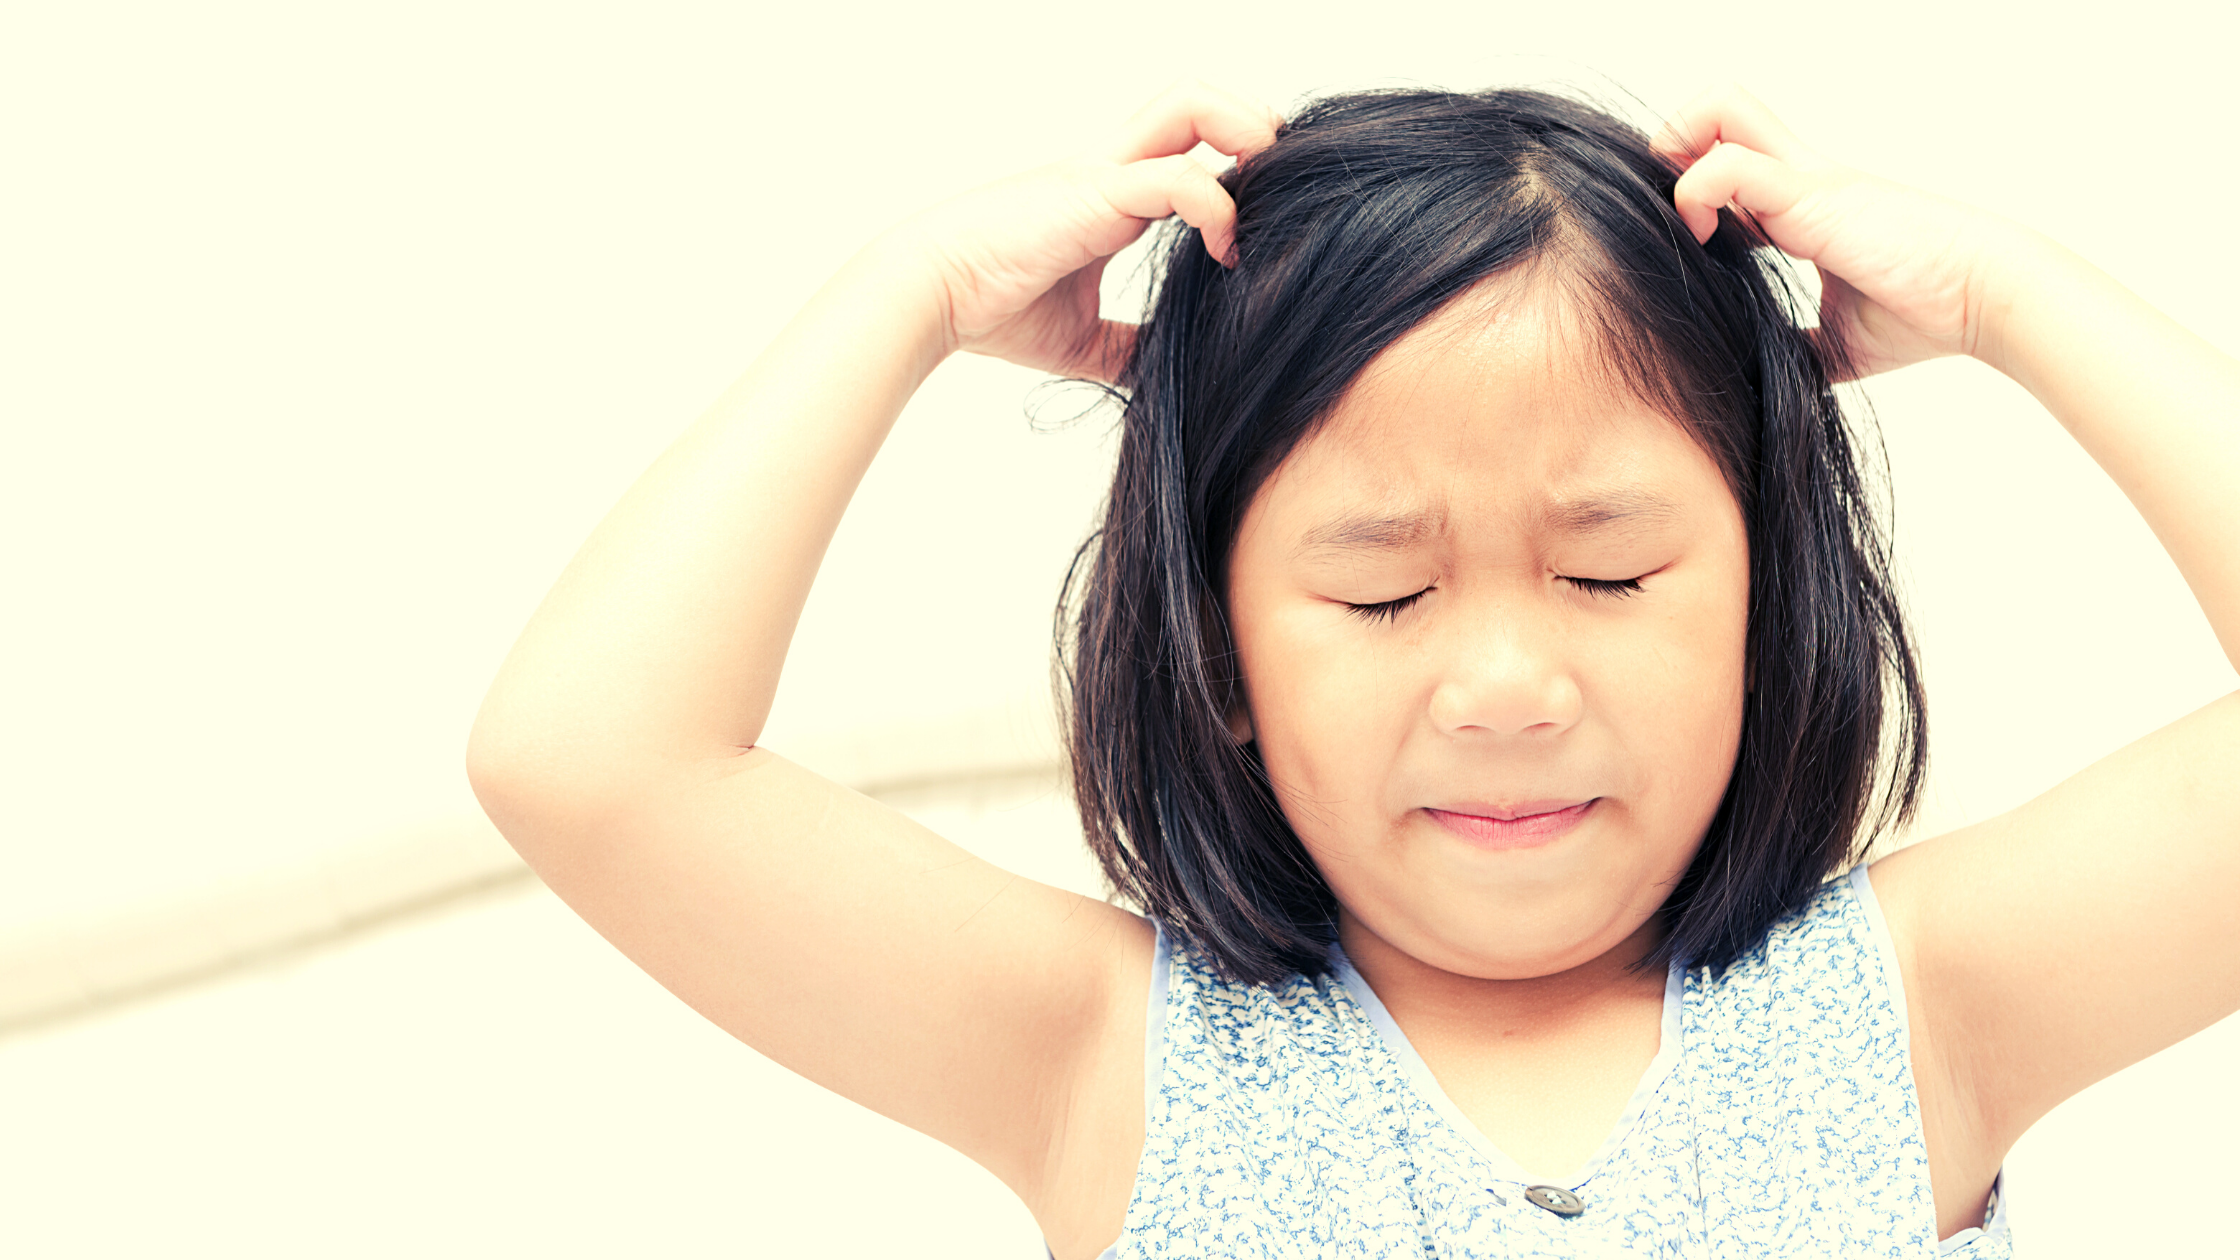 Girl scratching head because of lice